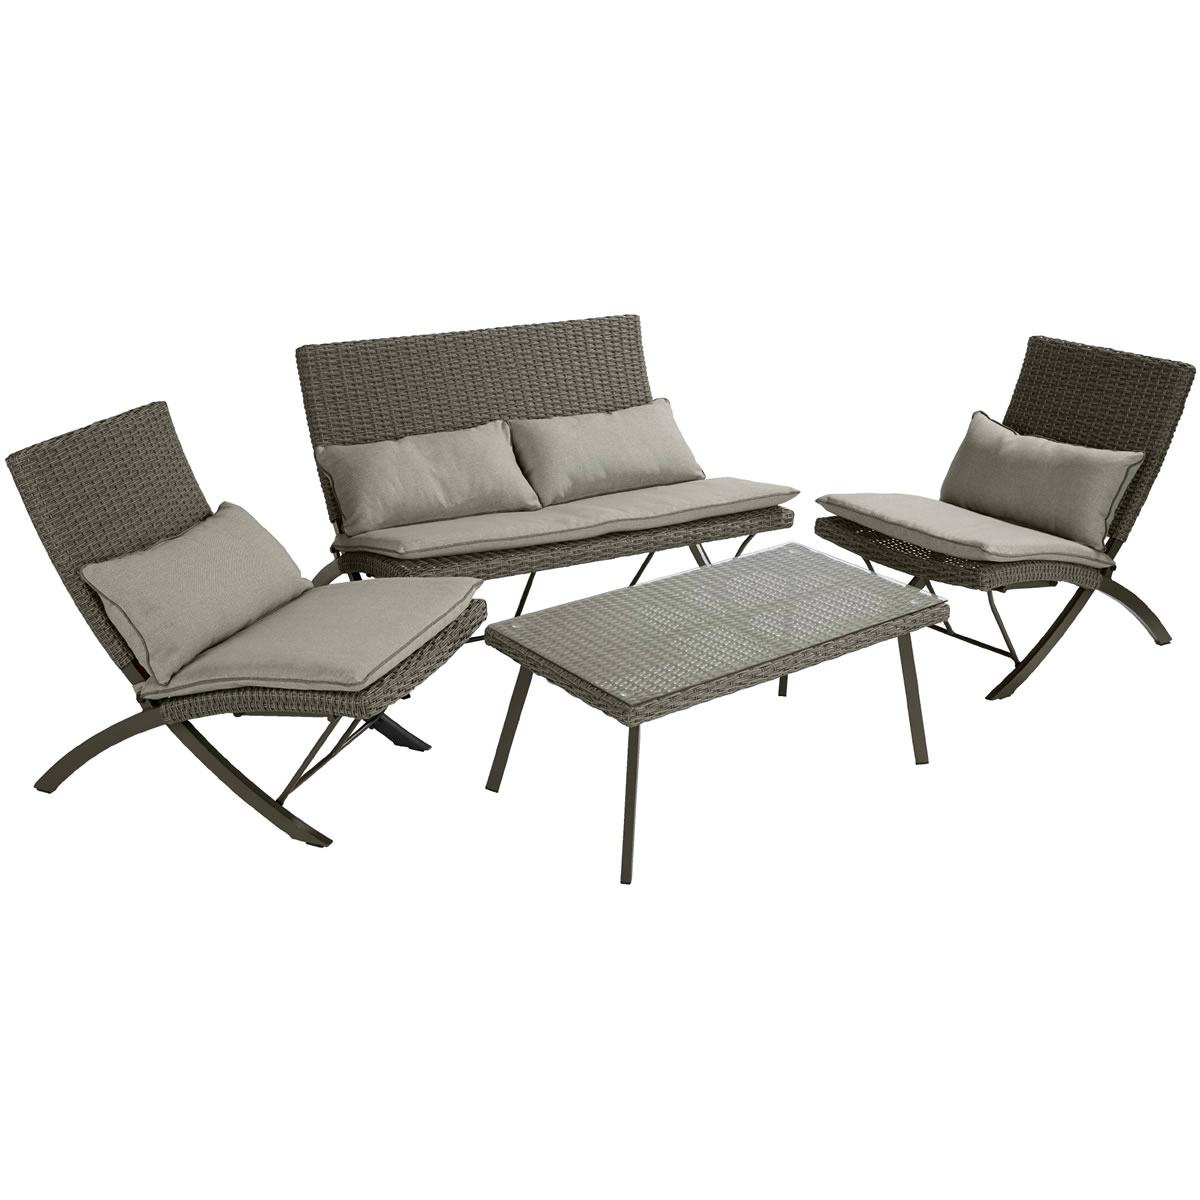 Extra image of Hartman Essential  Folding Lounge Coffee Set in Slate / Stone